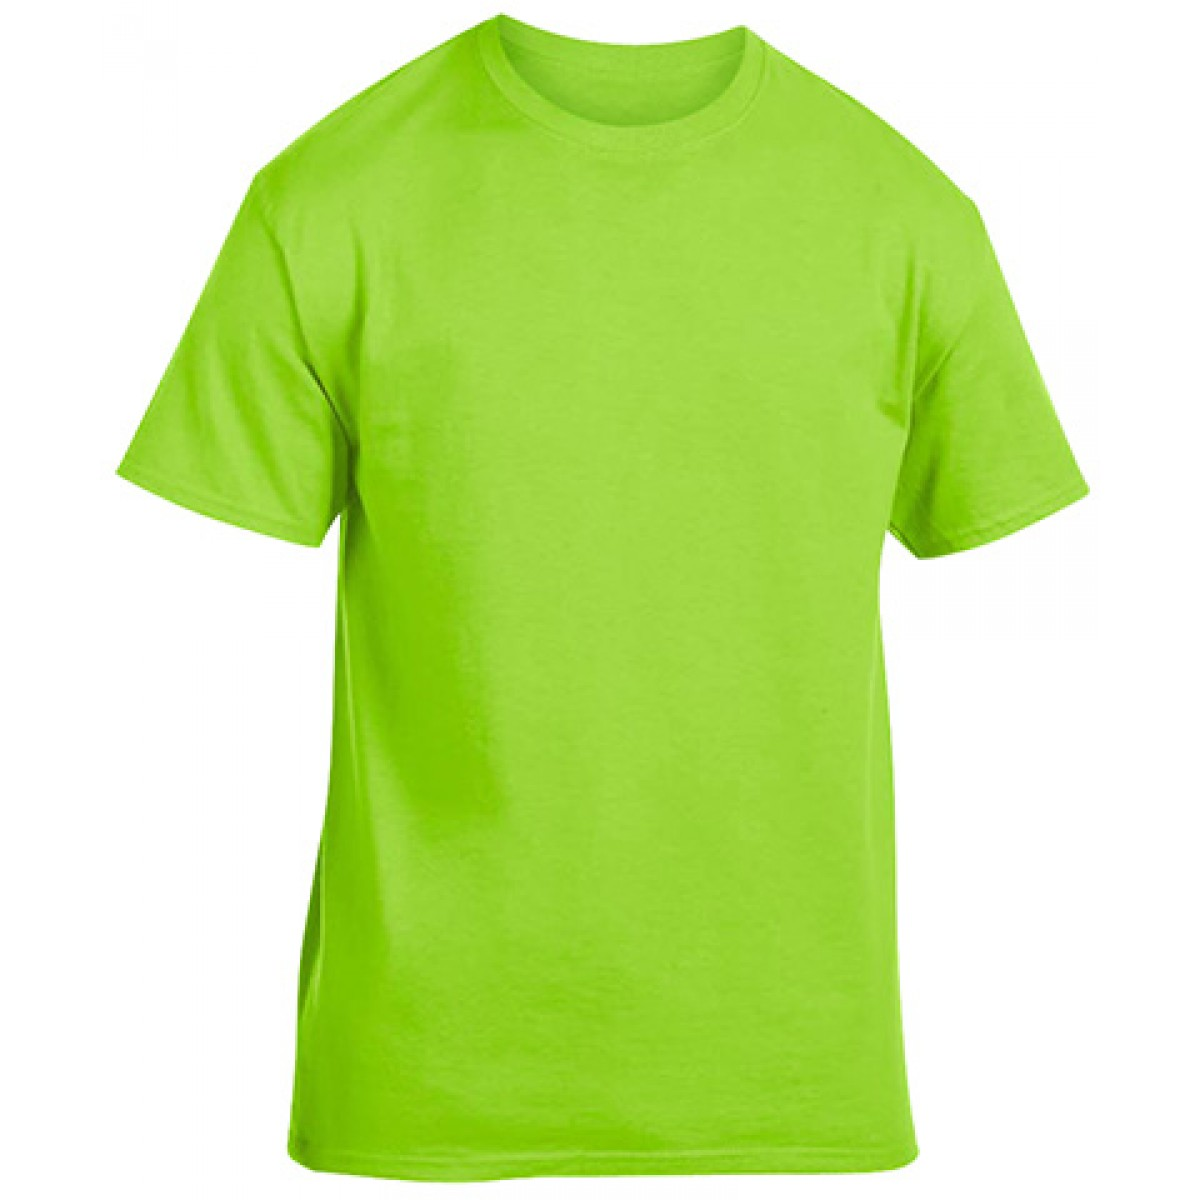 Soft 100% Cotton T-Shirt-Lime Green-M